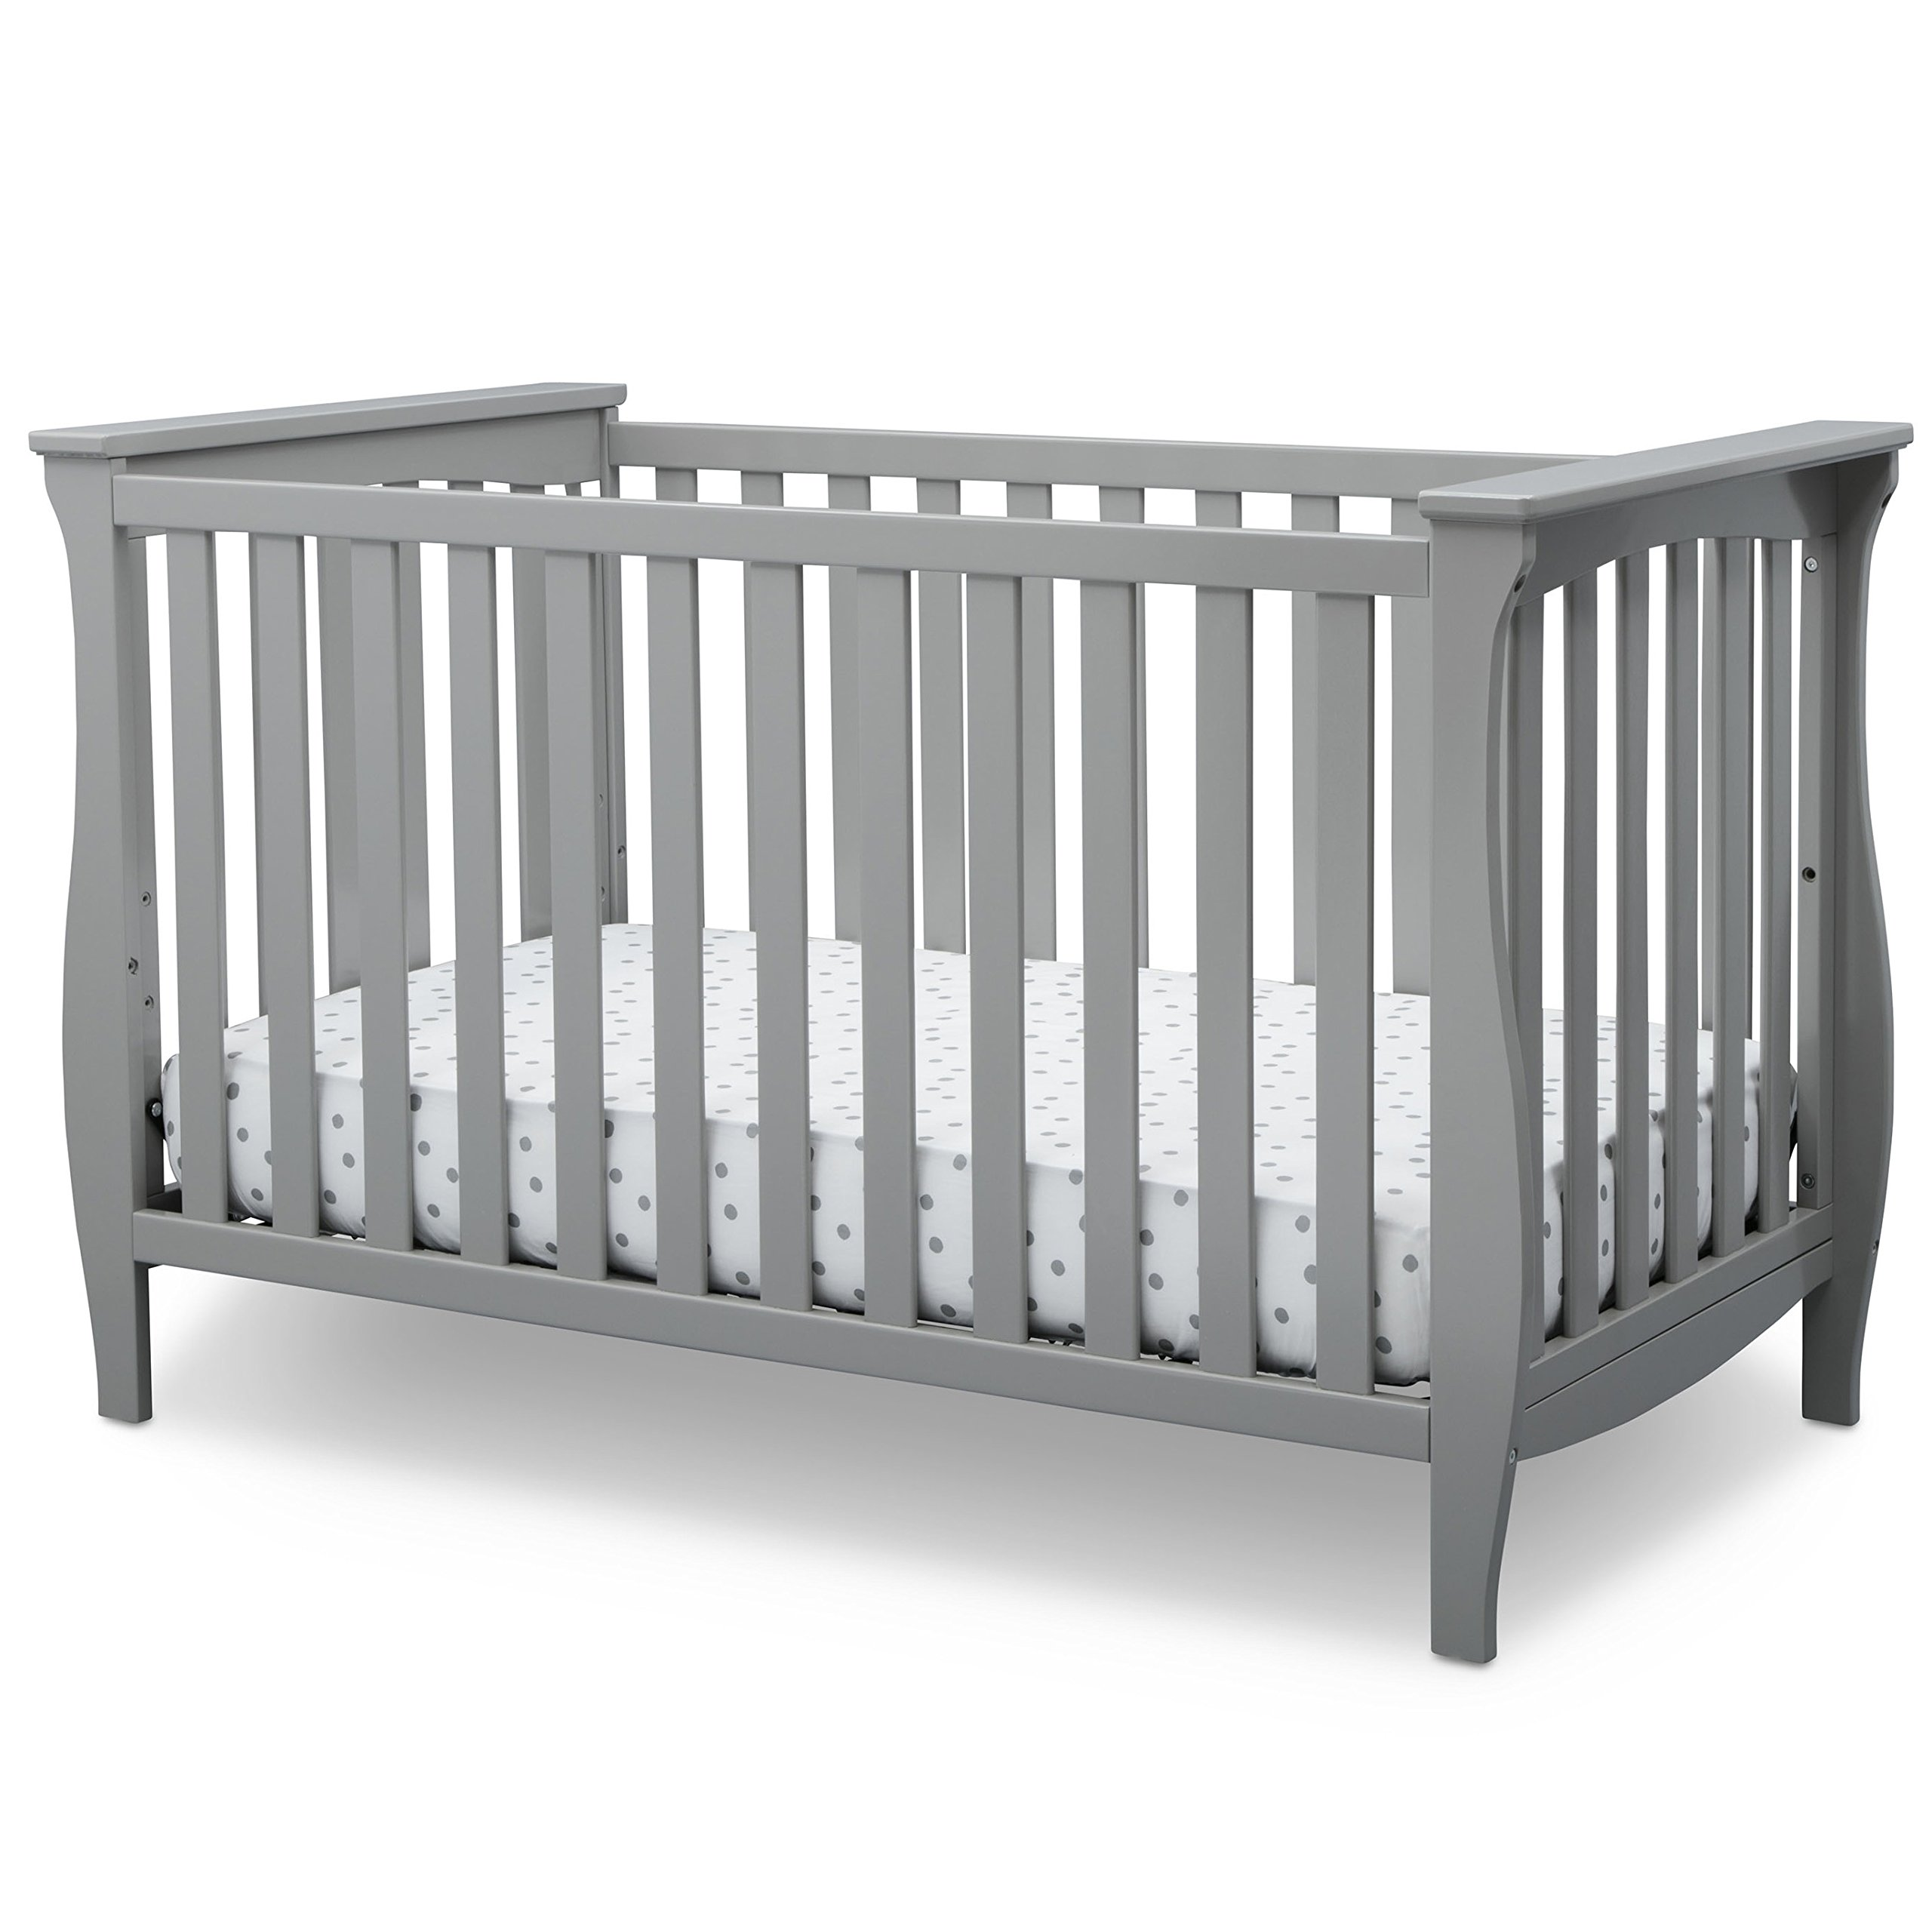 Delta Children Lancaster 3 in 1 Convertible Crib, Grey